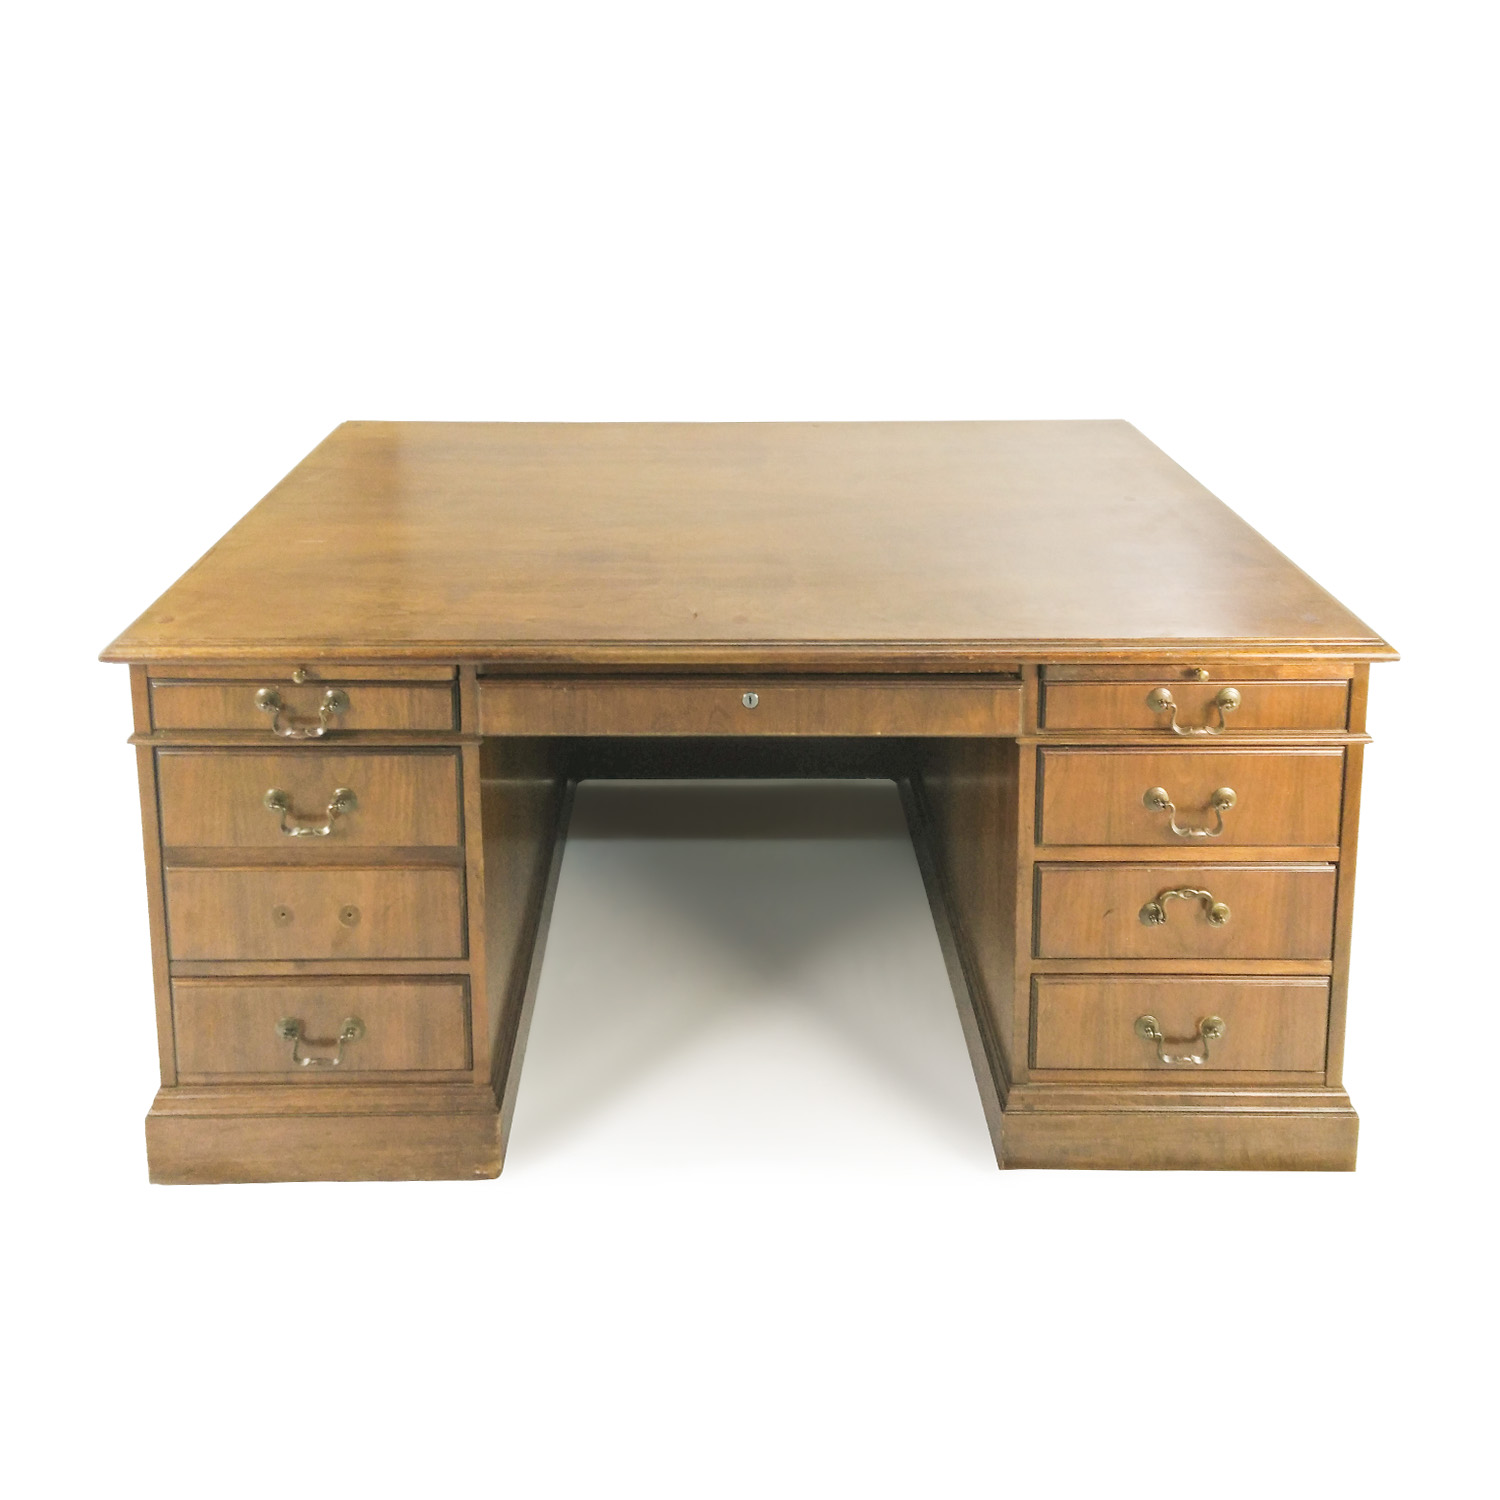 Antique Antique Solid Oak Bankers Desk second hand